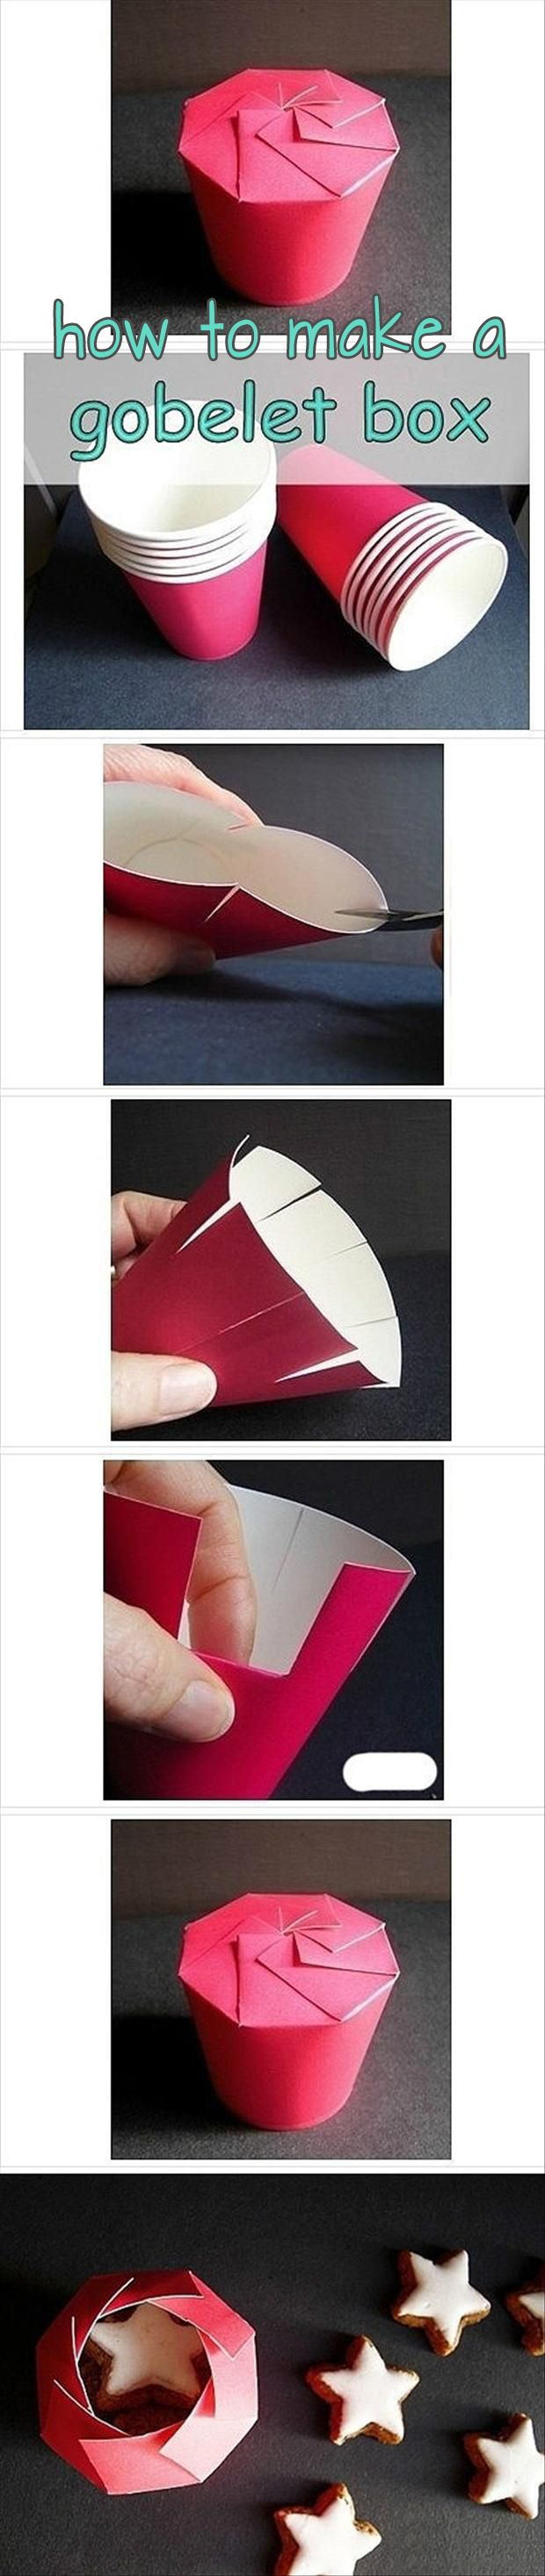 Simple do it yourself craft ideas 52 pics crafty pictures simple do it yourself craft ideas 52 pics solutioingenieria Gallery